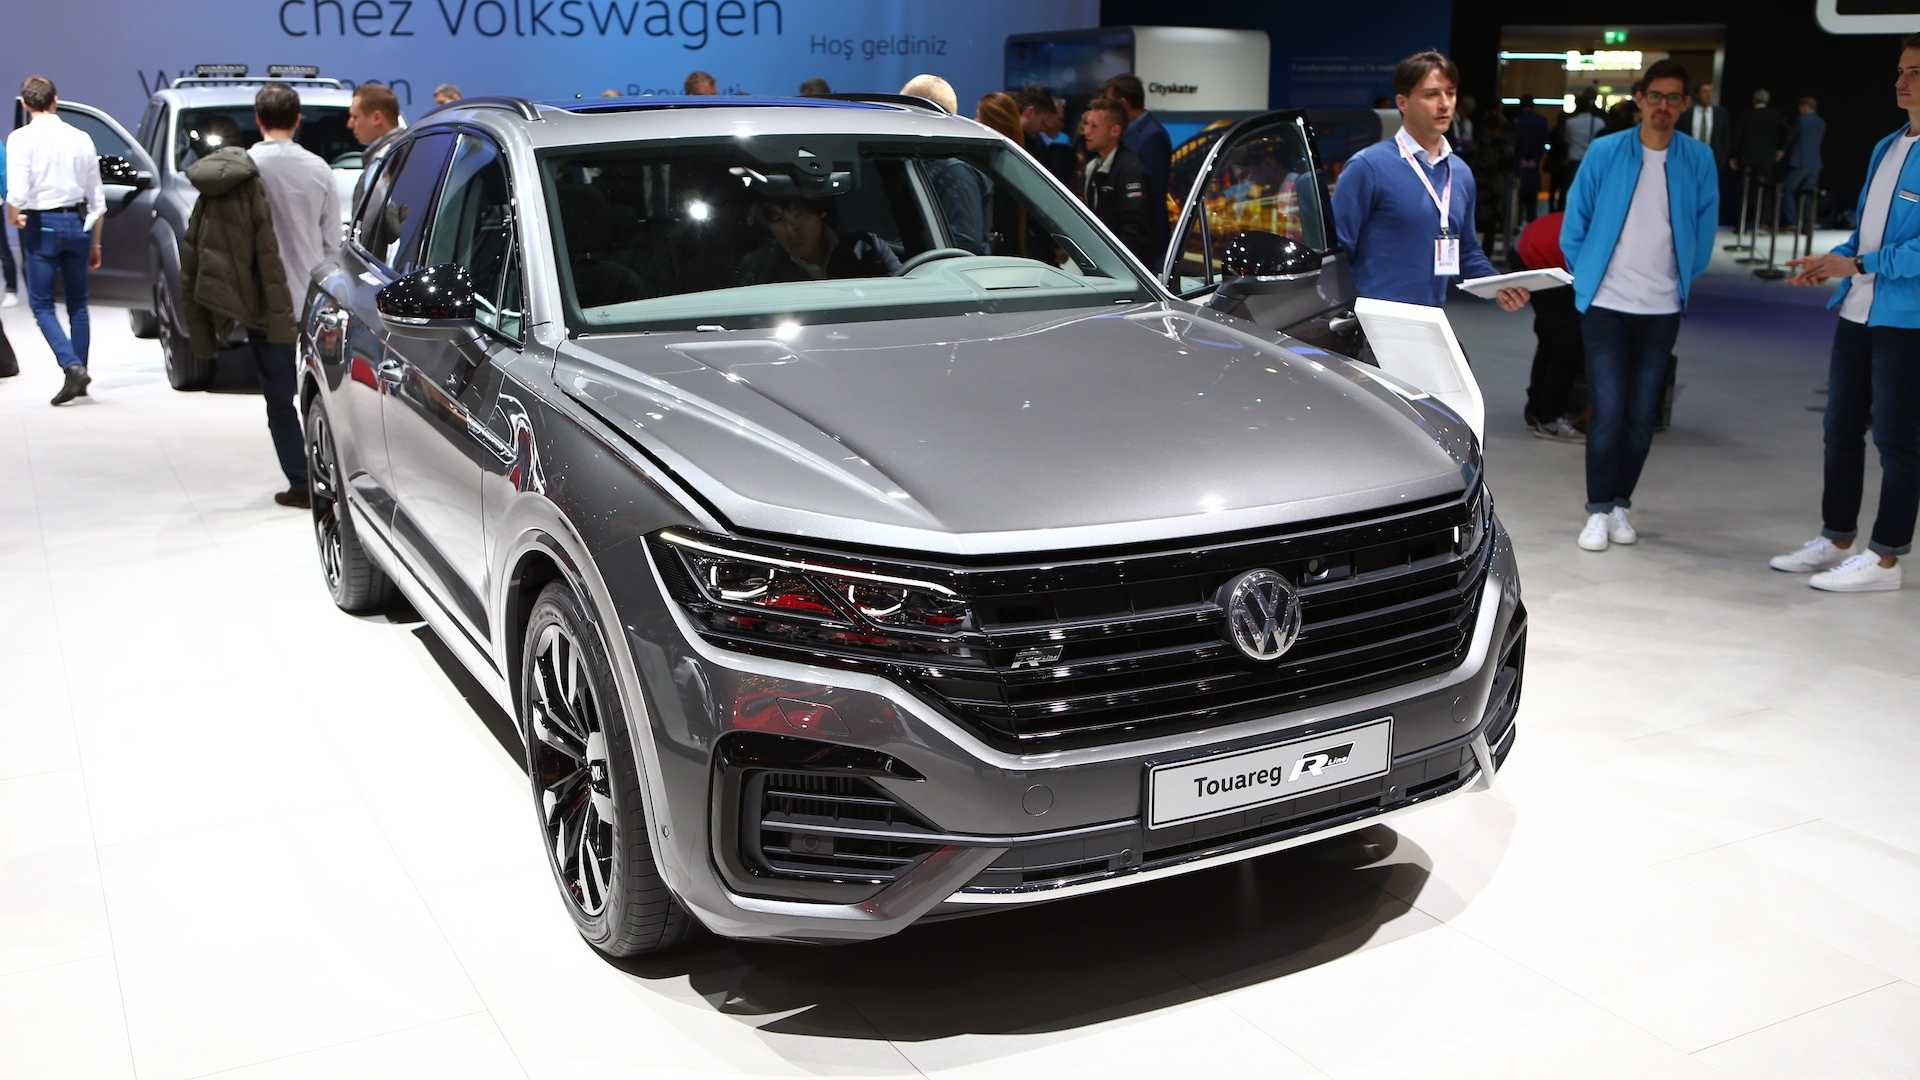 Volkswagen Touareg with V8 Diesel Engine